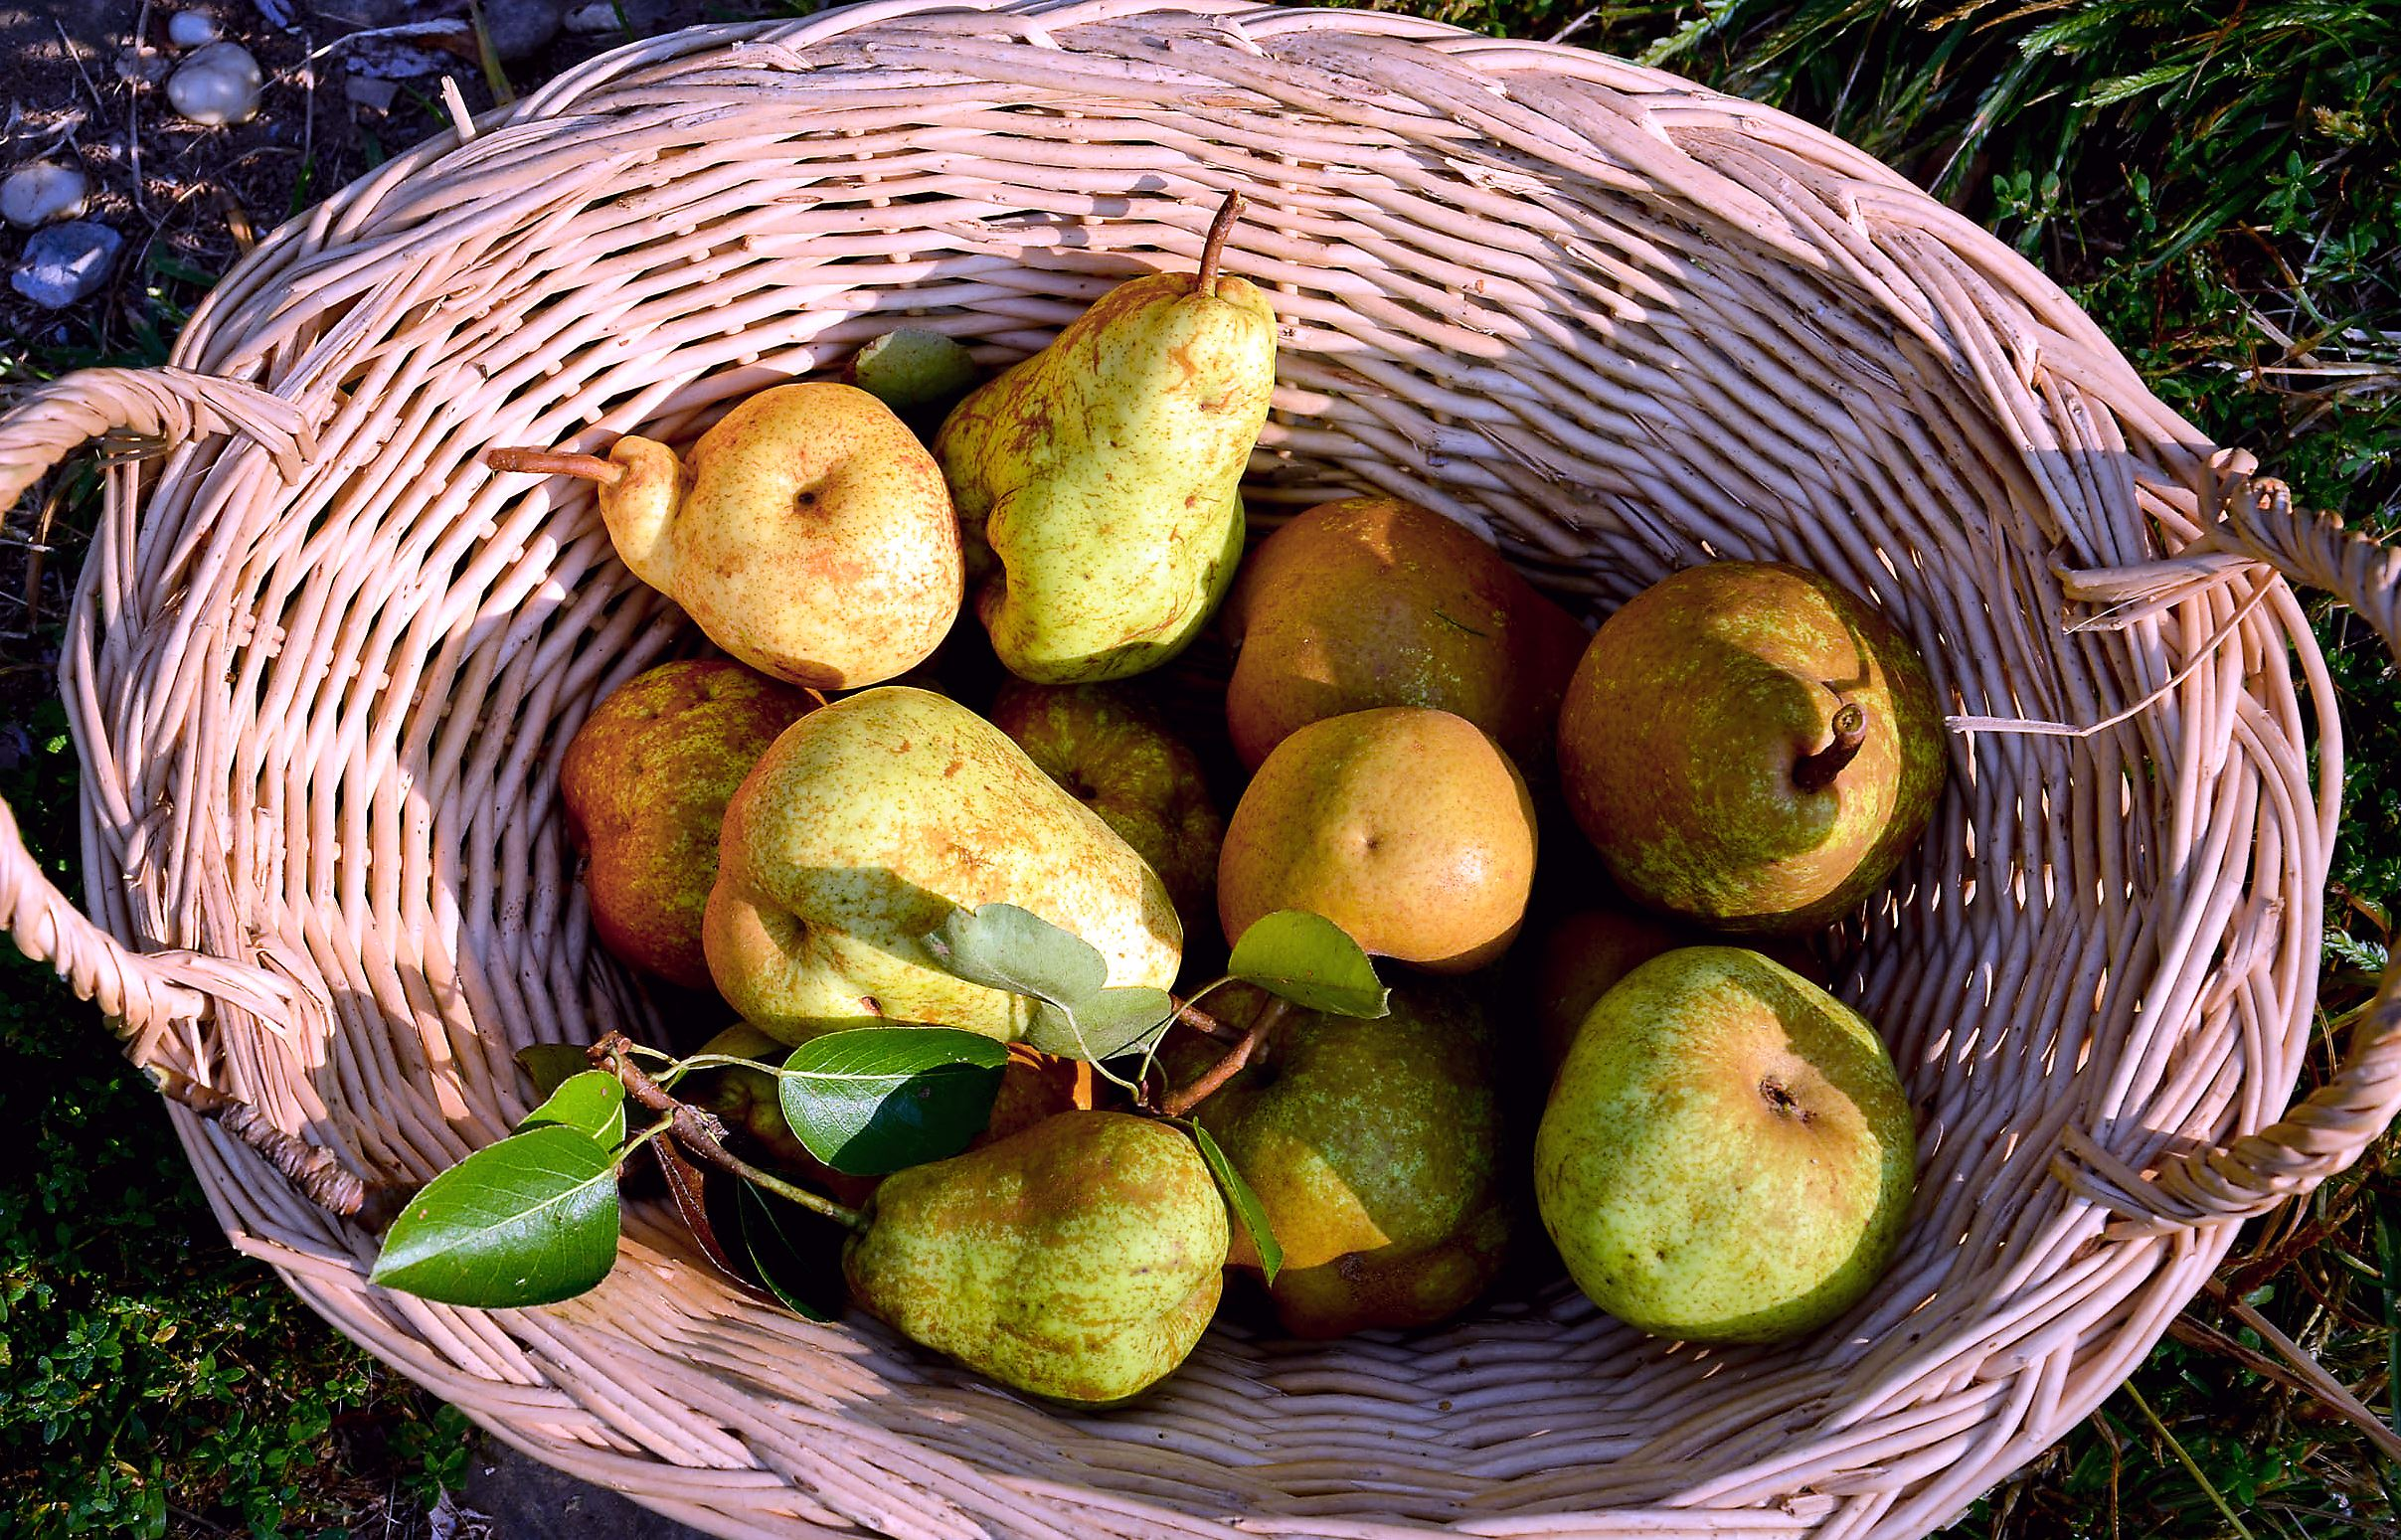 pears Basket of local pears.